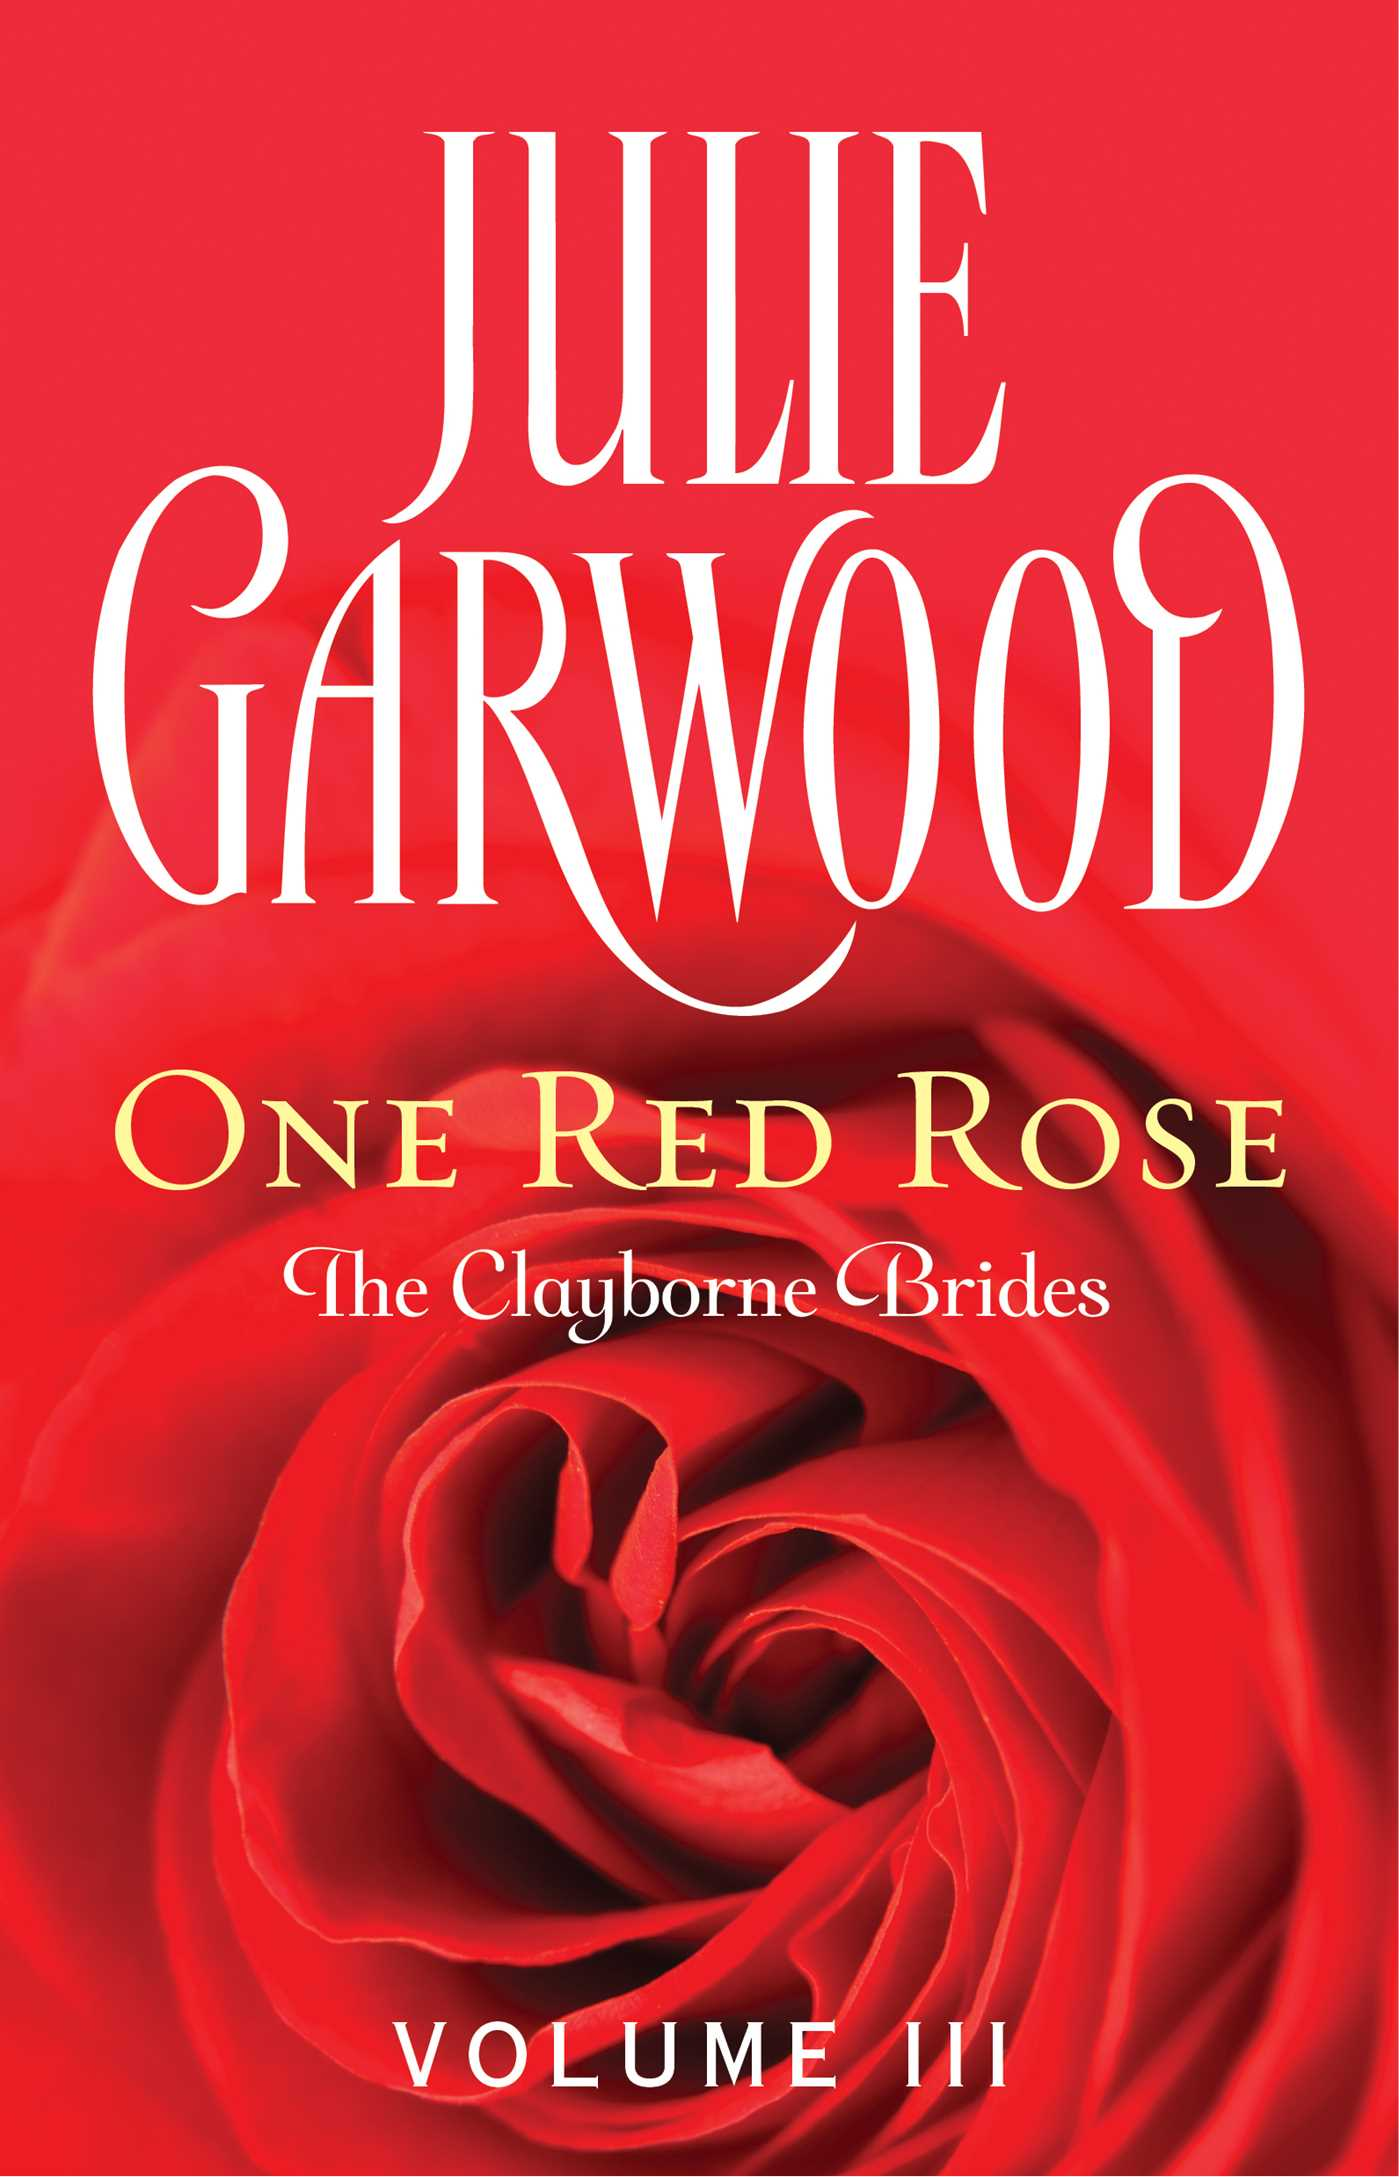 Julie Garwood  book cover